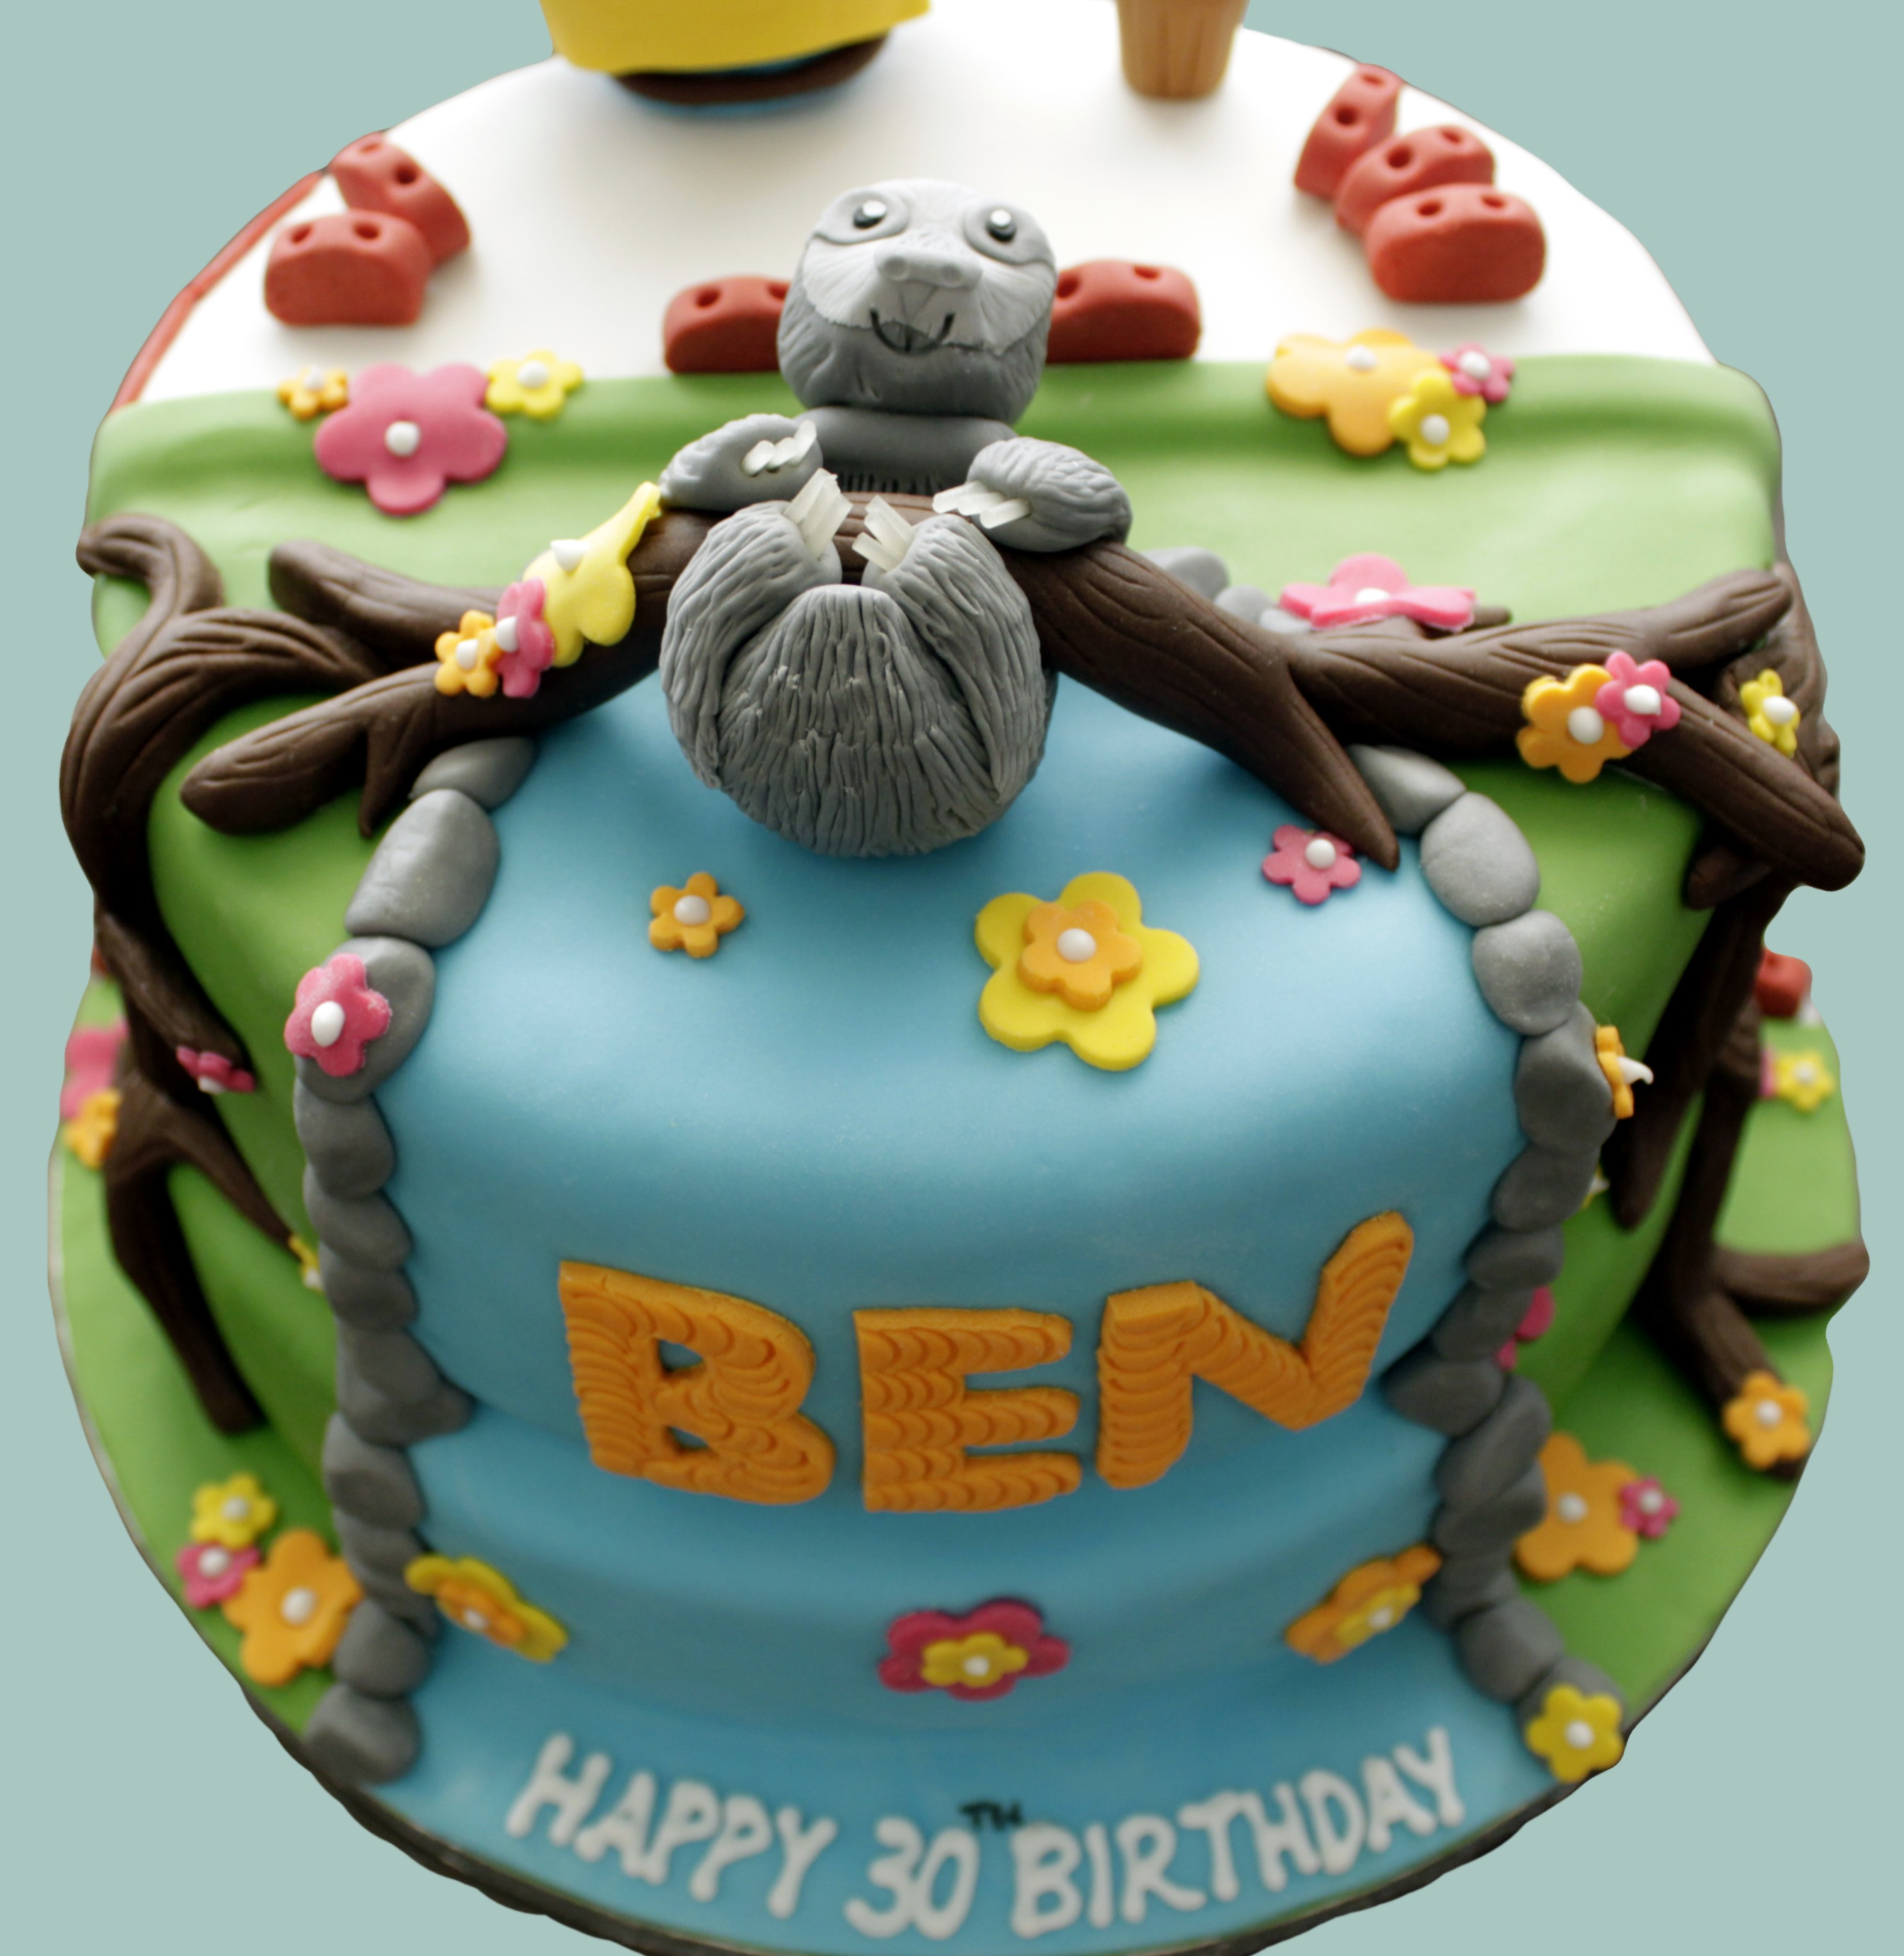 Dual Themed Cake: Jungle Sloth / Builder